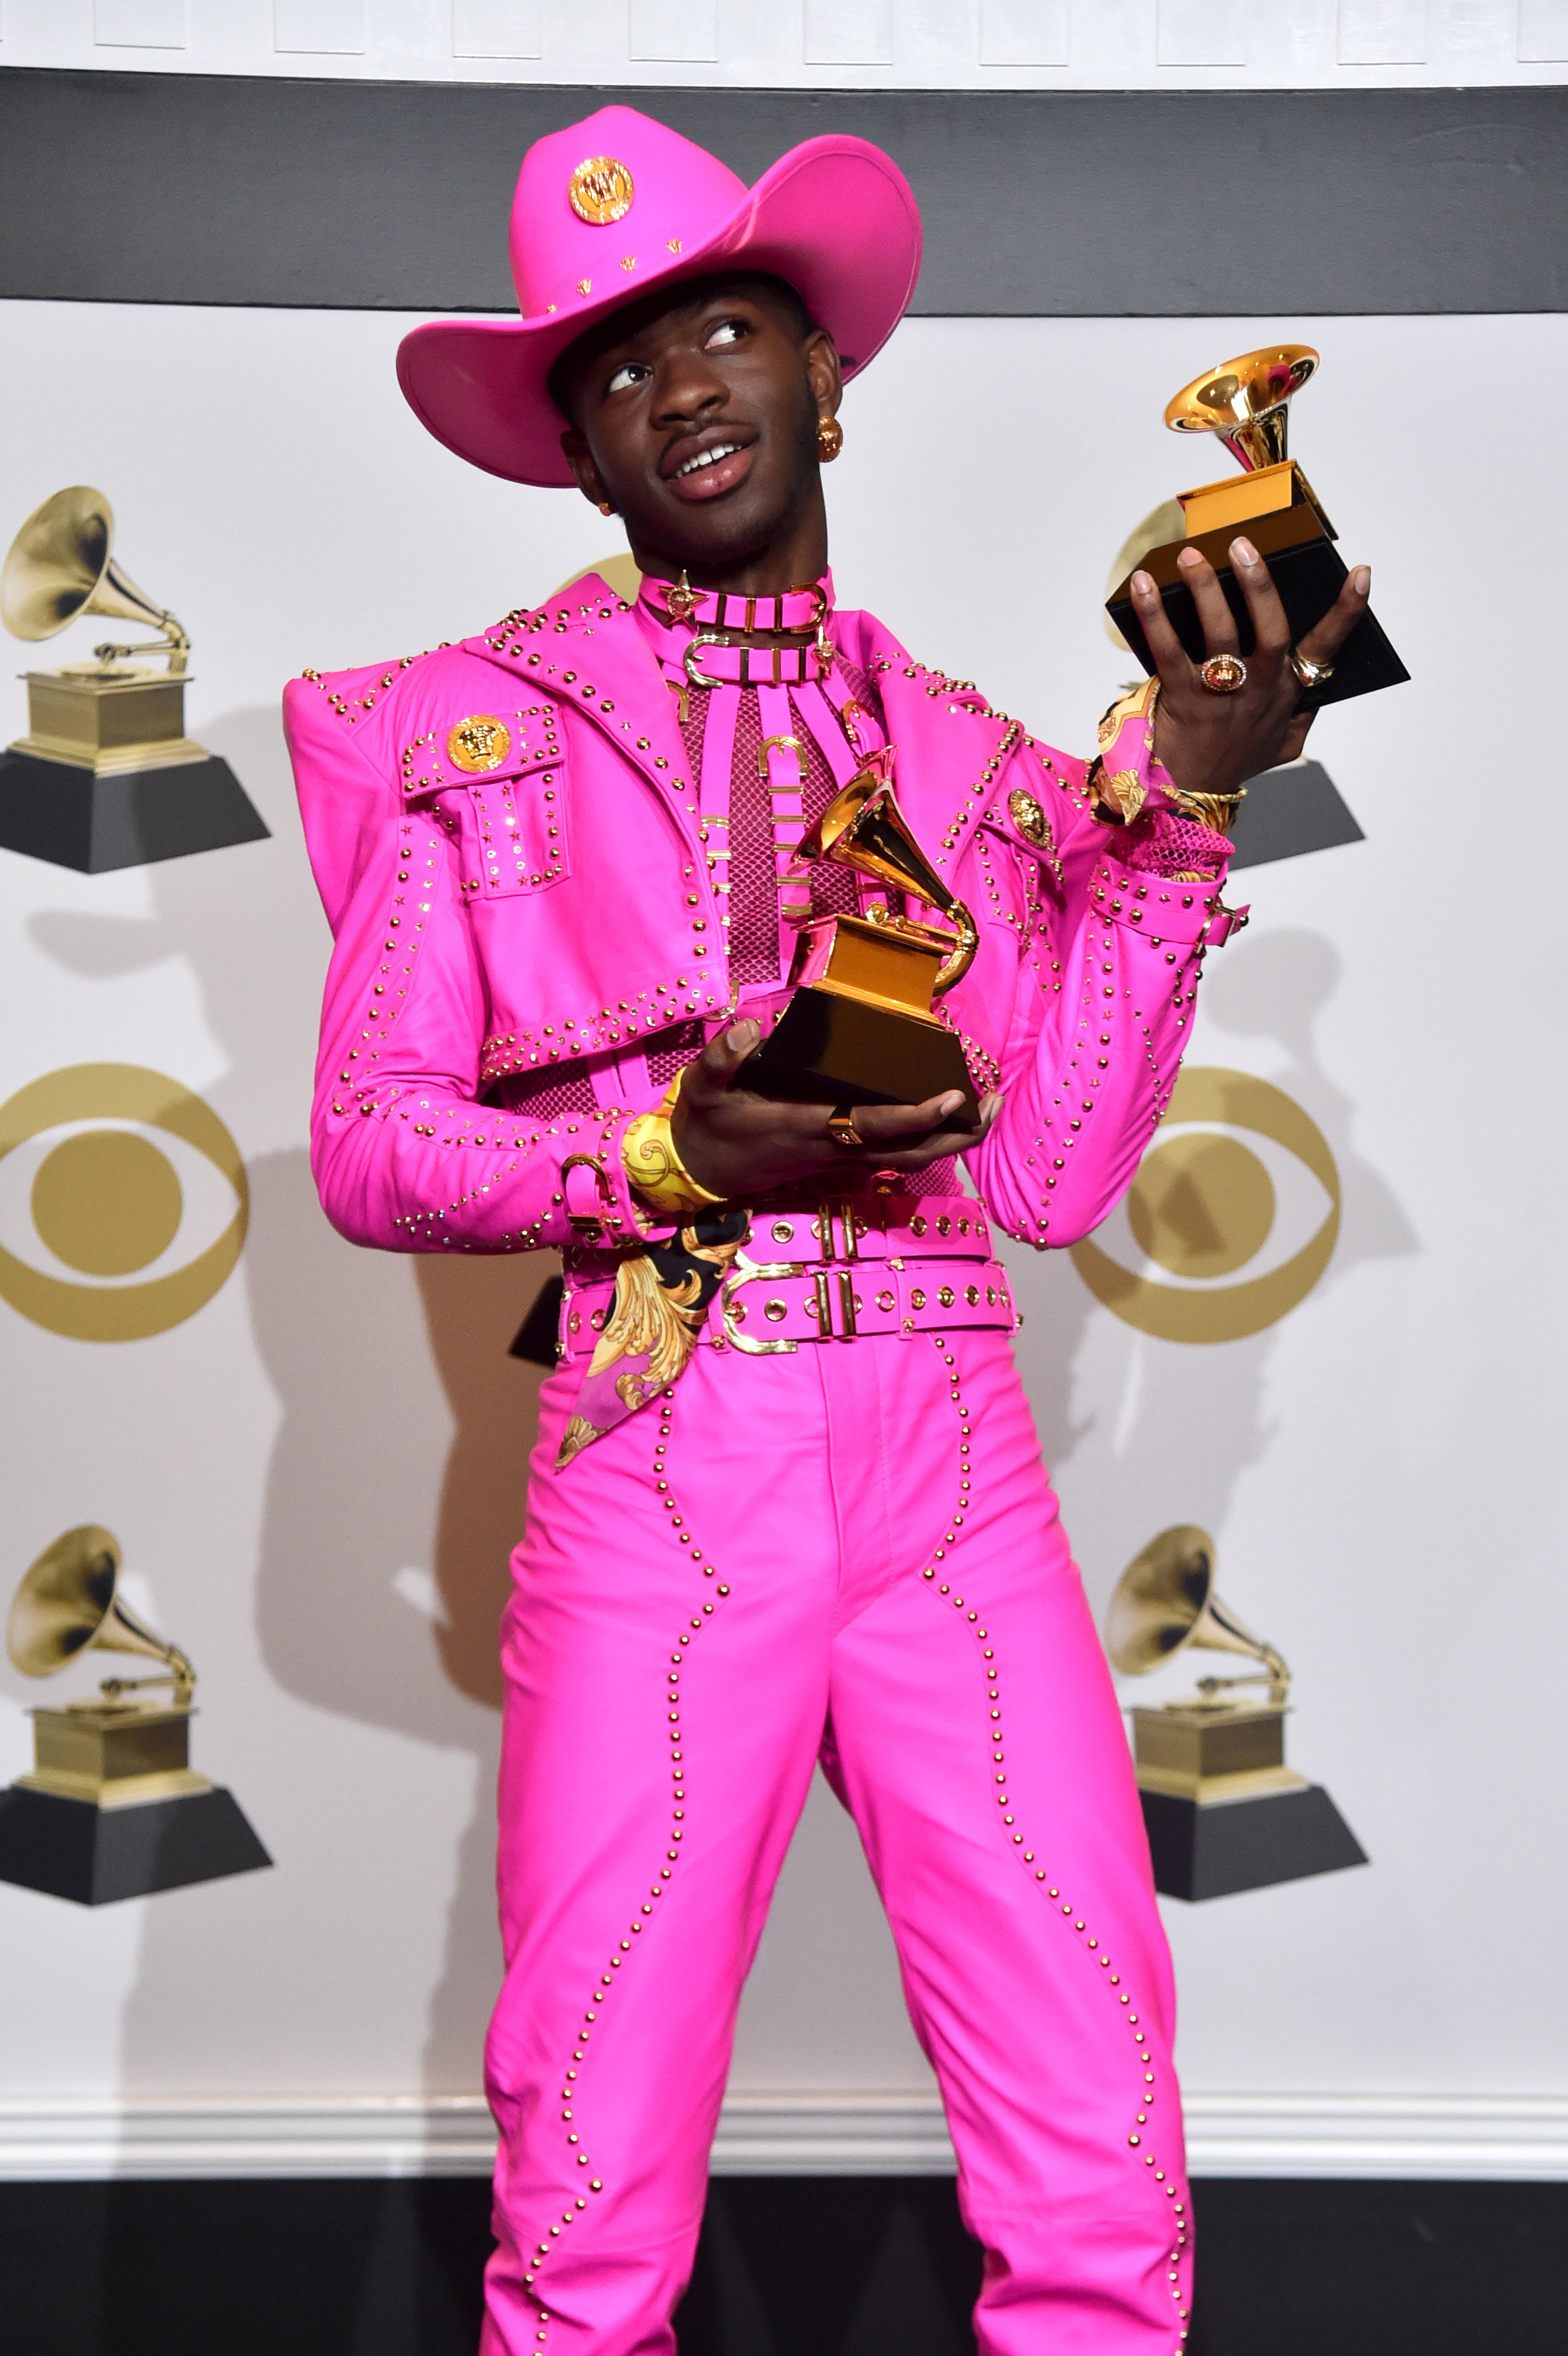 Lil Nas X holds his two Grammy awards wearing a vibrant dominatrix-type outfit and cowboy hat